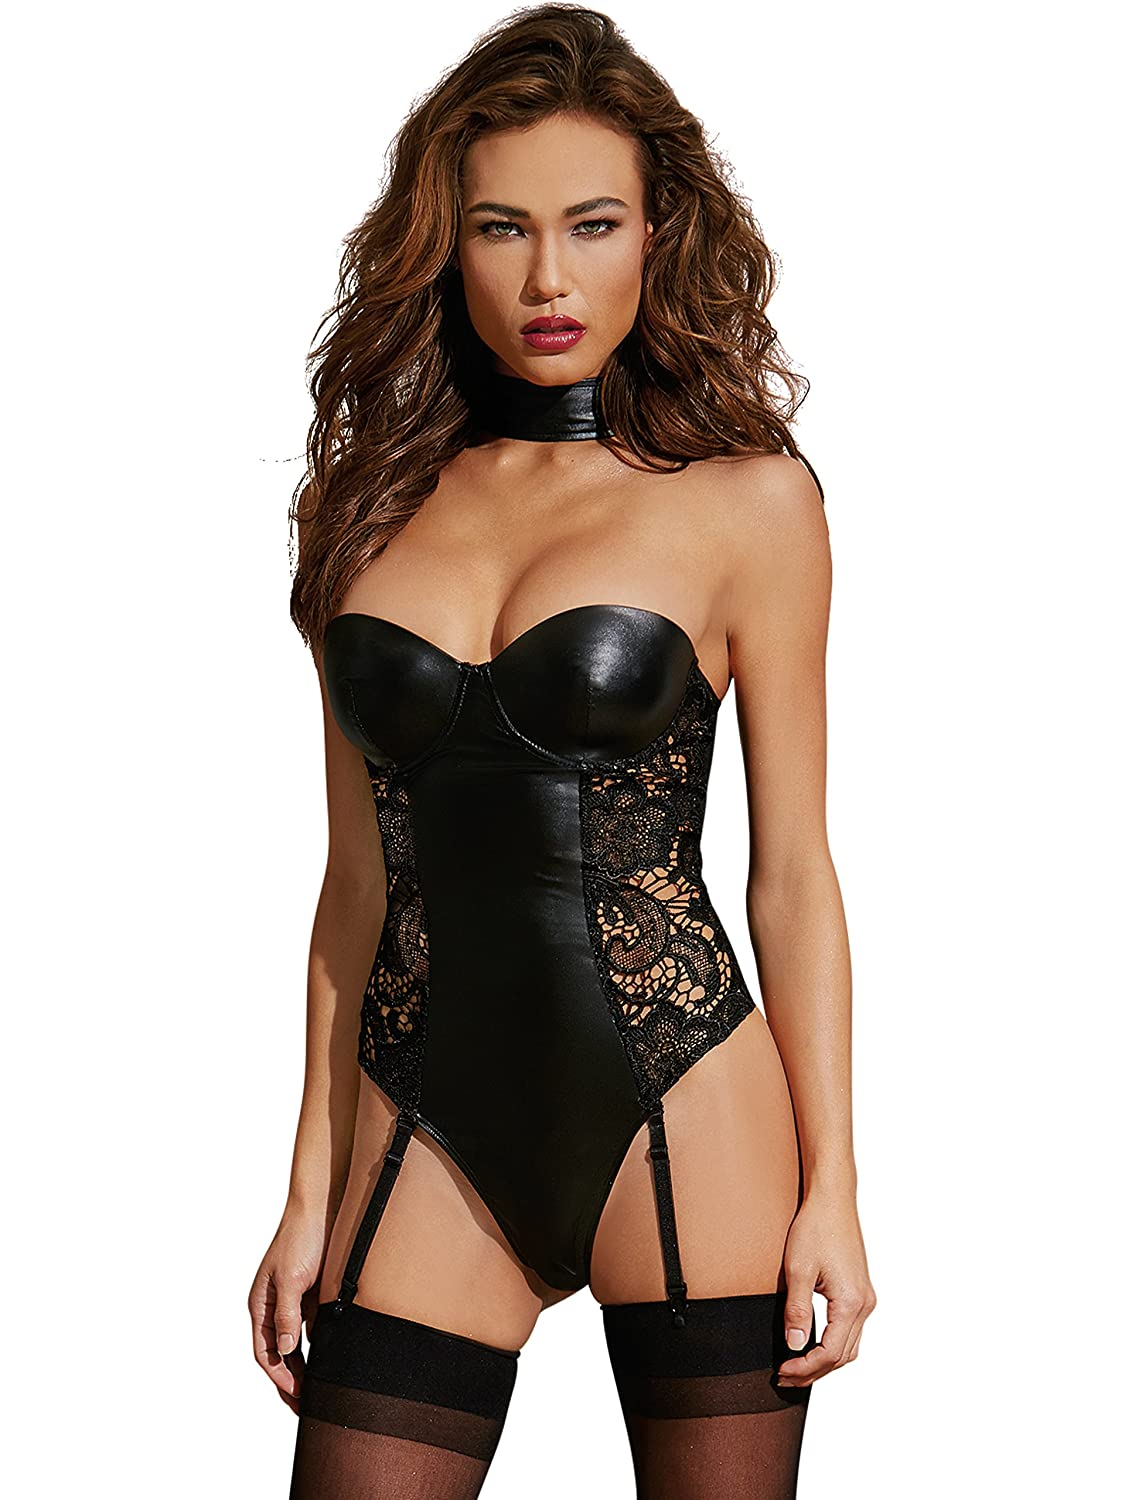 89f3ad89b Amazon.com  Dreamgirl Women s Faux-Leather and Lace Teddy  Clothing